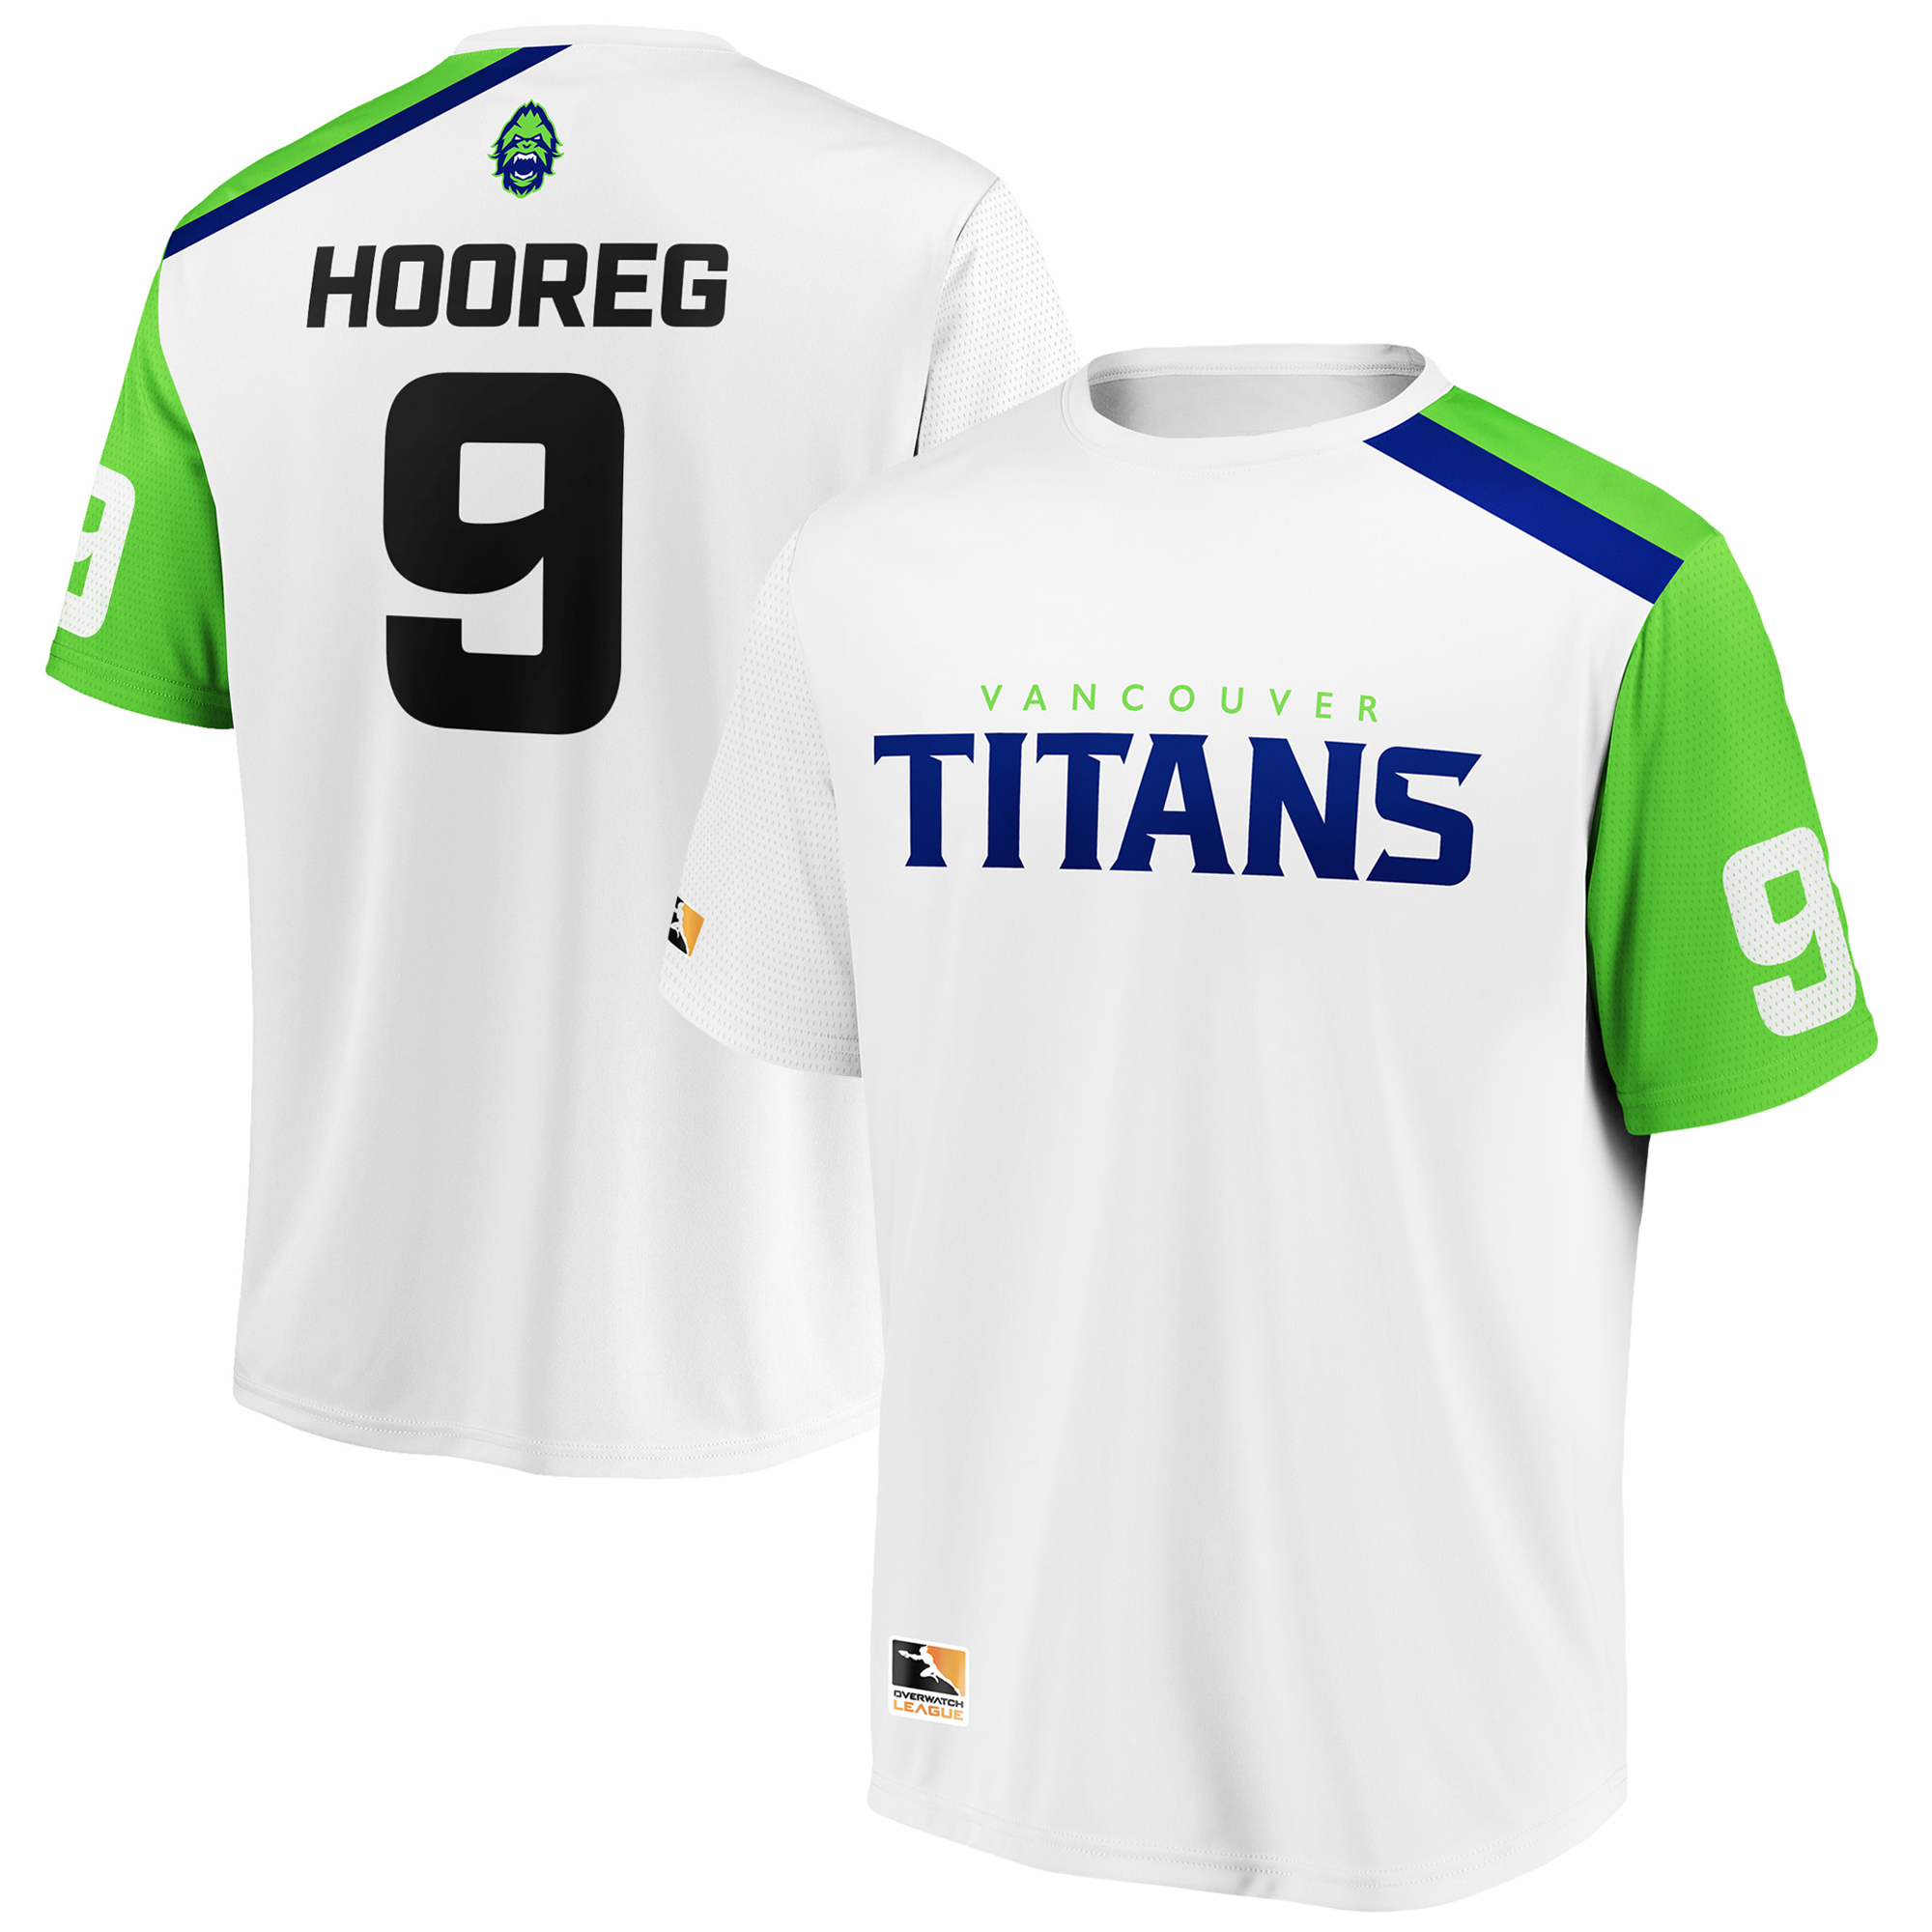 Hooreg Vancouver Titans Overwatch League Replica Away Jersey - White